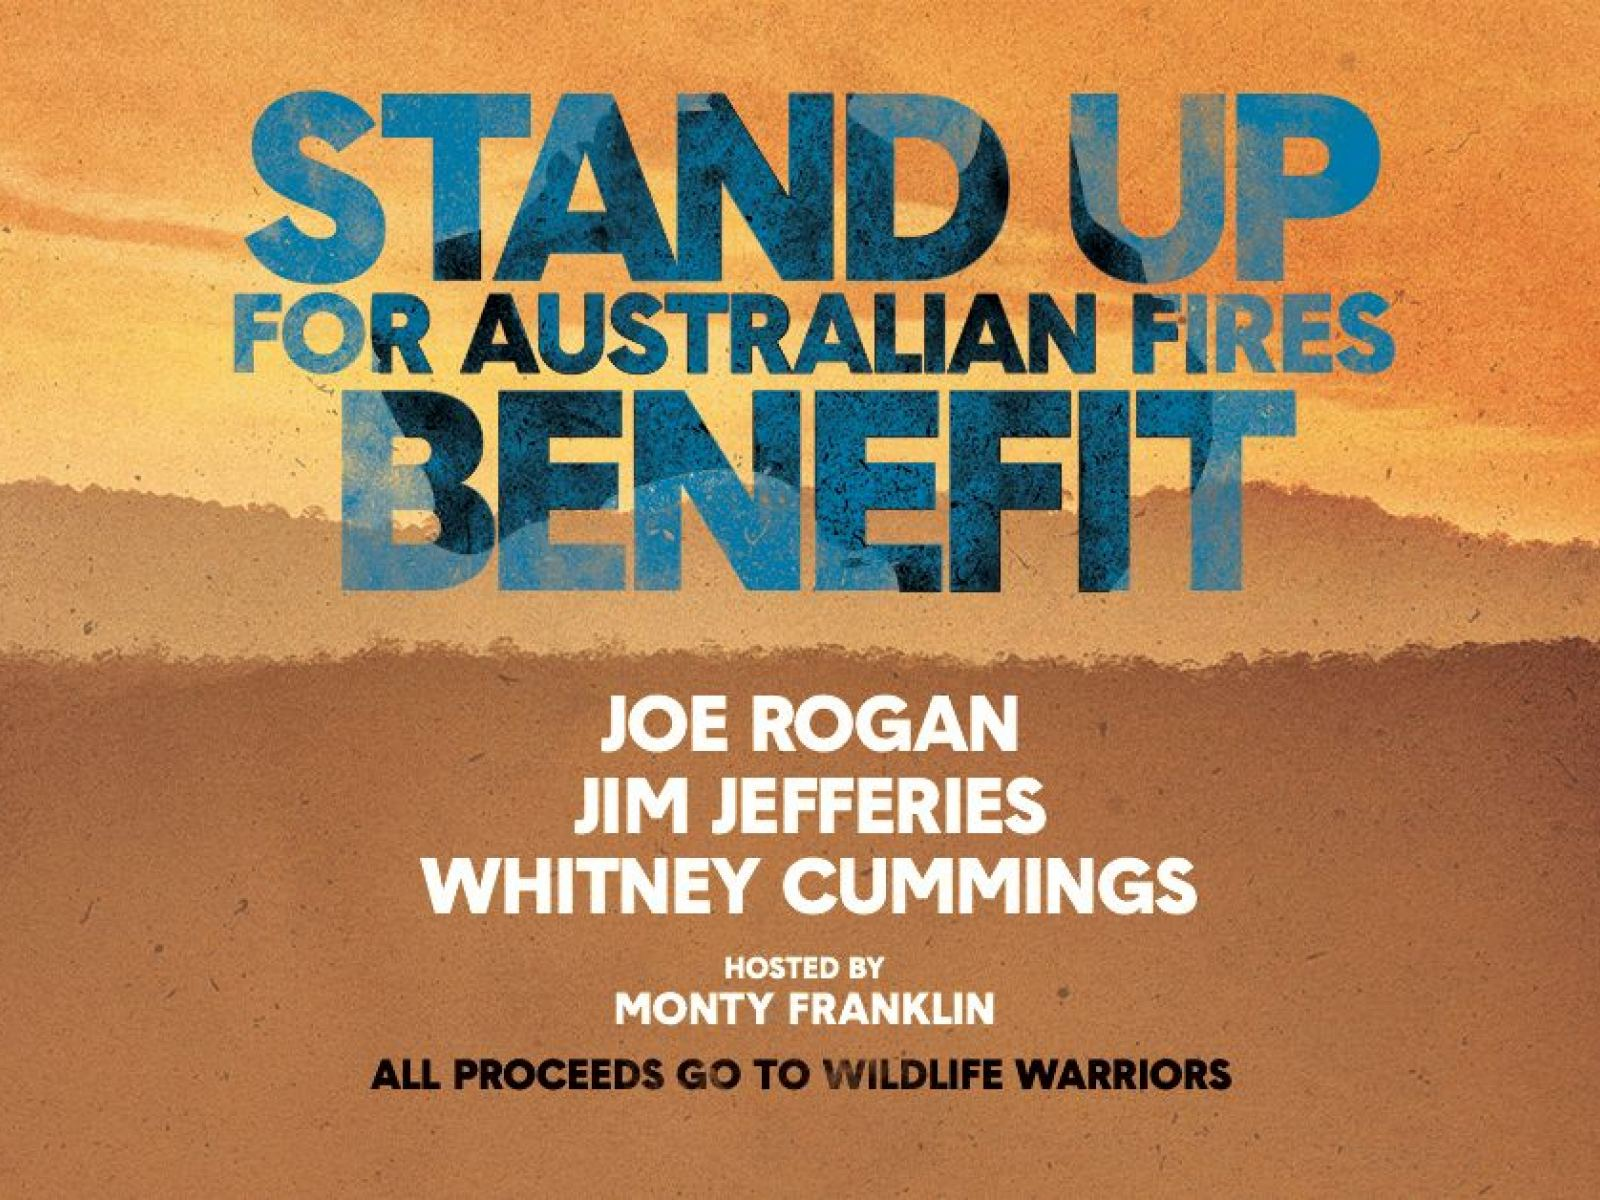 Main image for event titled Stand Up For Australian Fires Benefit w/ Joe Rogan, Jim Jefferies and Whitney Cummings